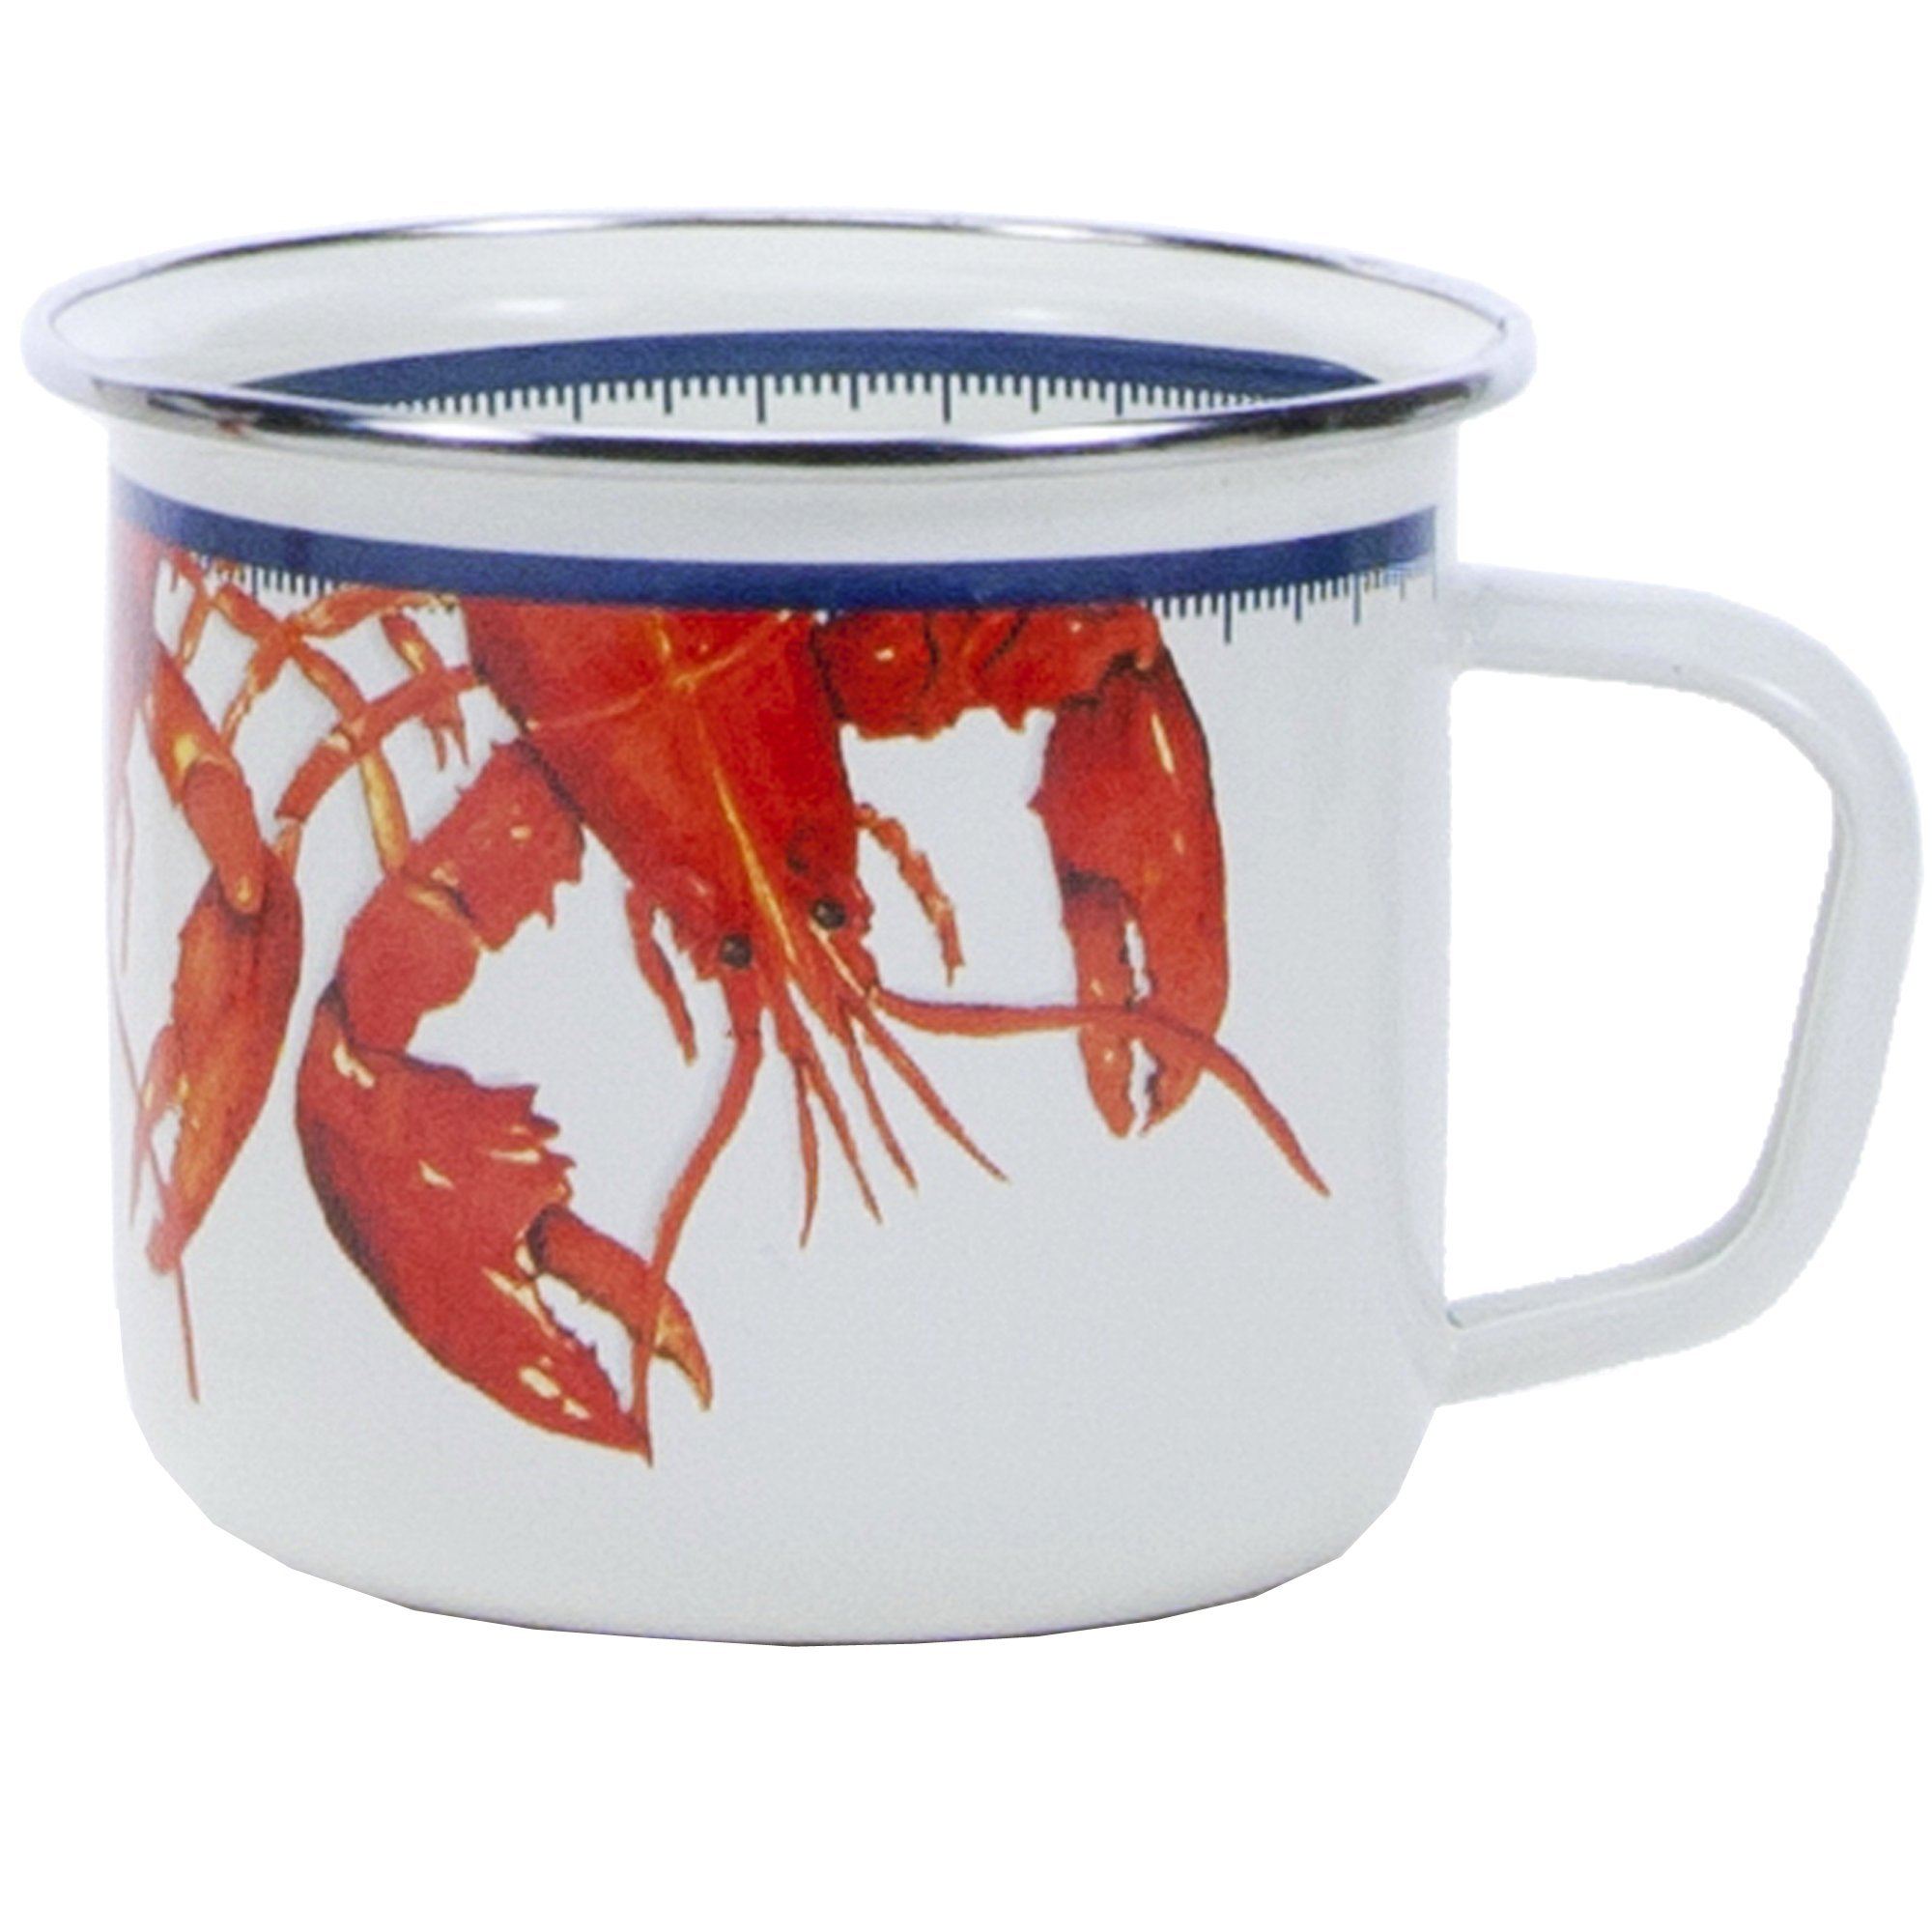 Enamelware - Lobster Pattern - 24 Ounce Soup Mug, 3.75 Inch Tall